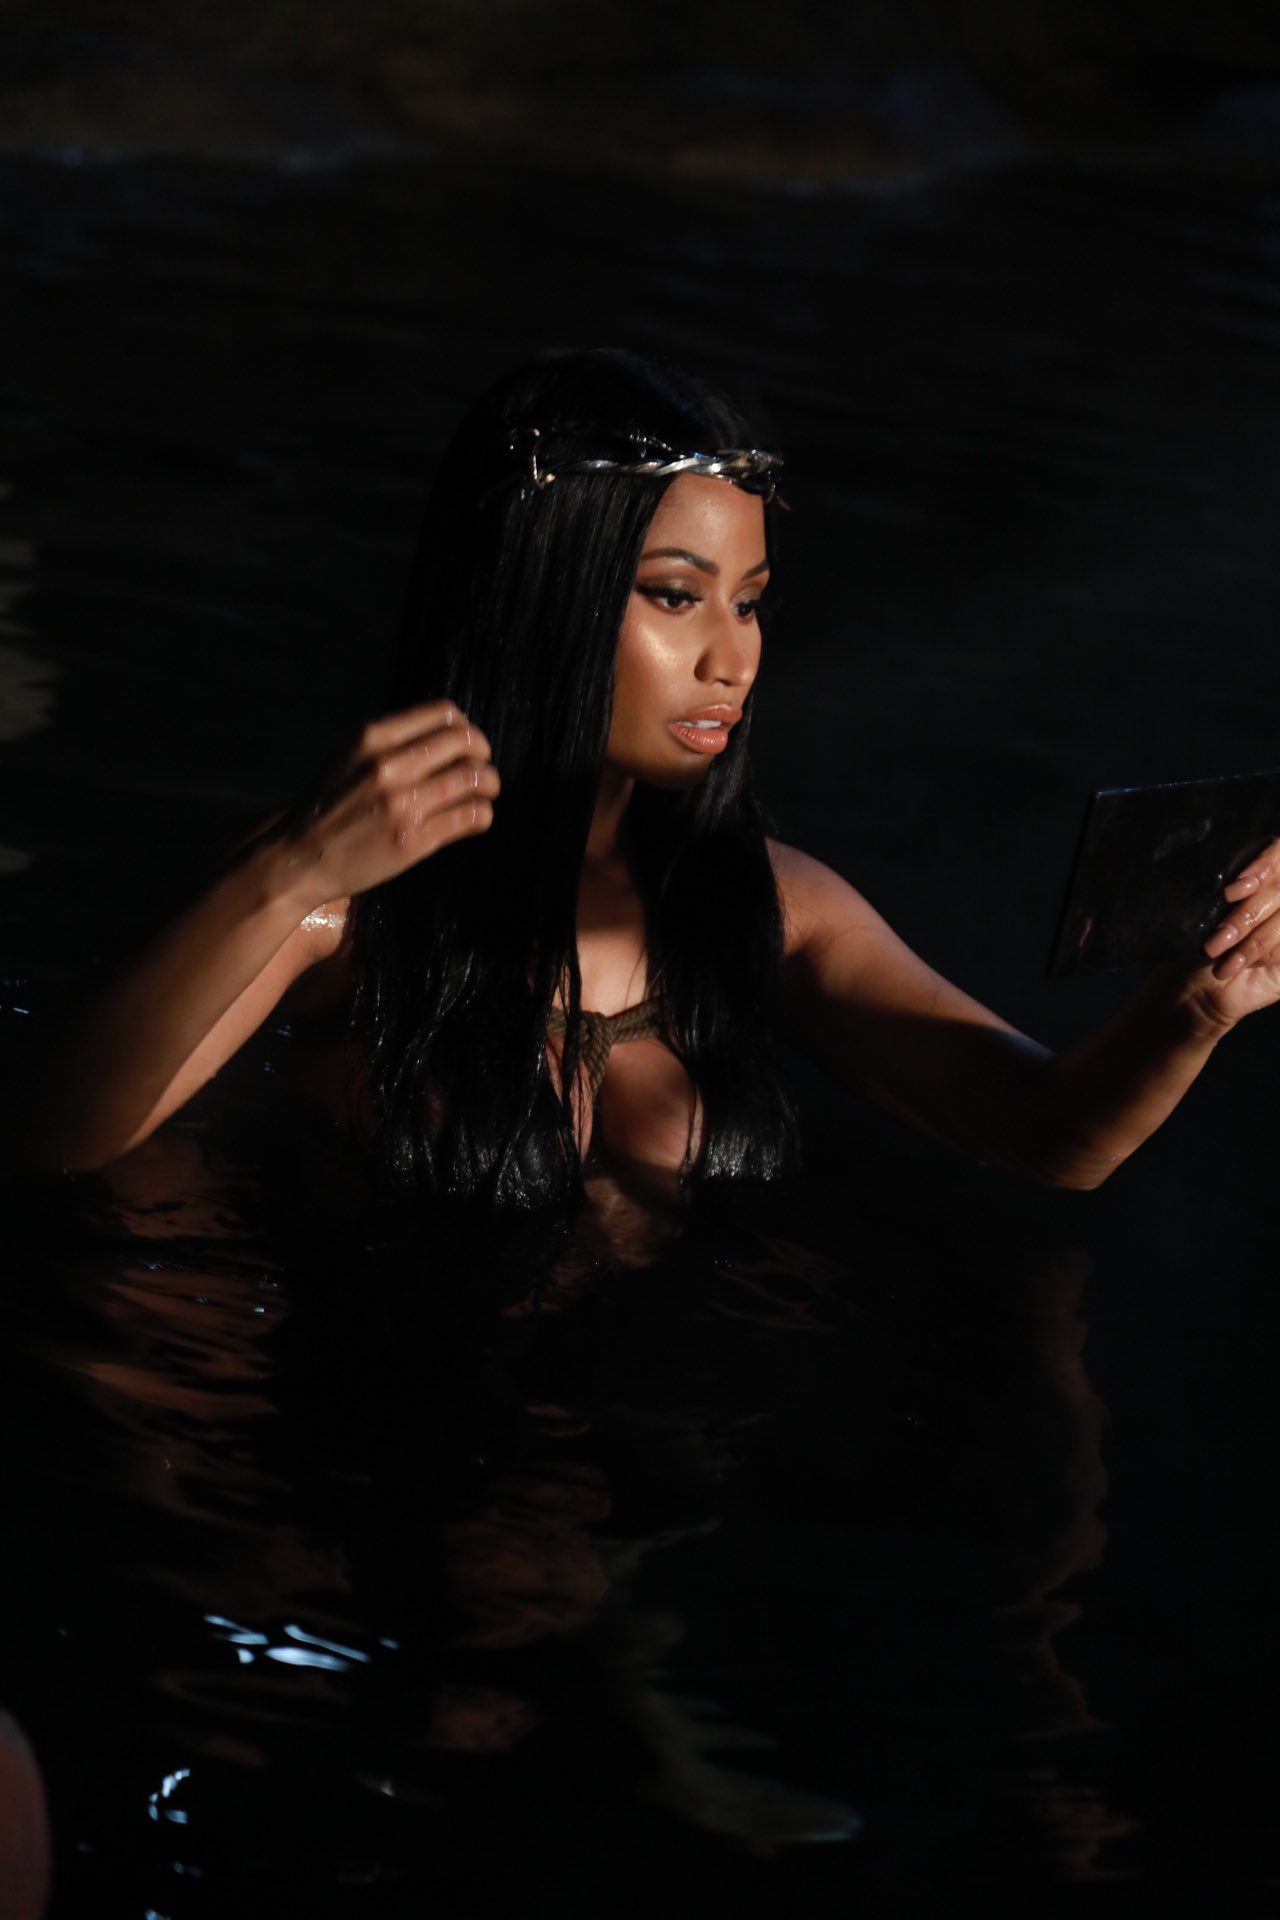 T H E  K I N G D O M  REJOICES   #NickiBBMAs https://t.co/2KuGkzlhOj